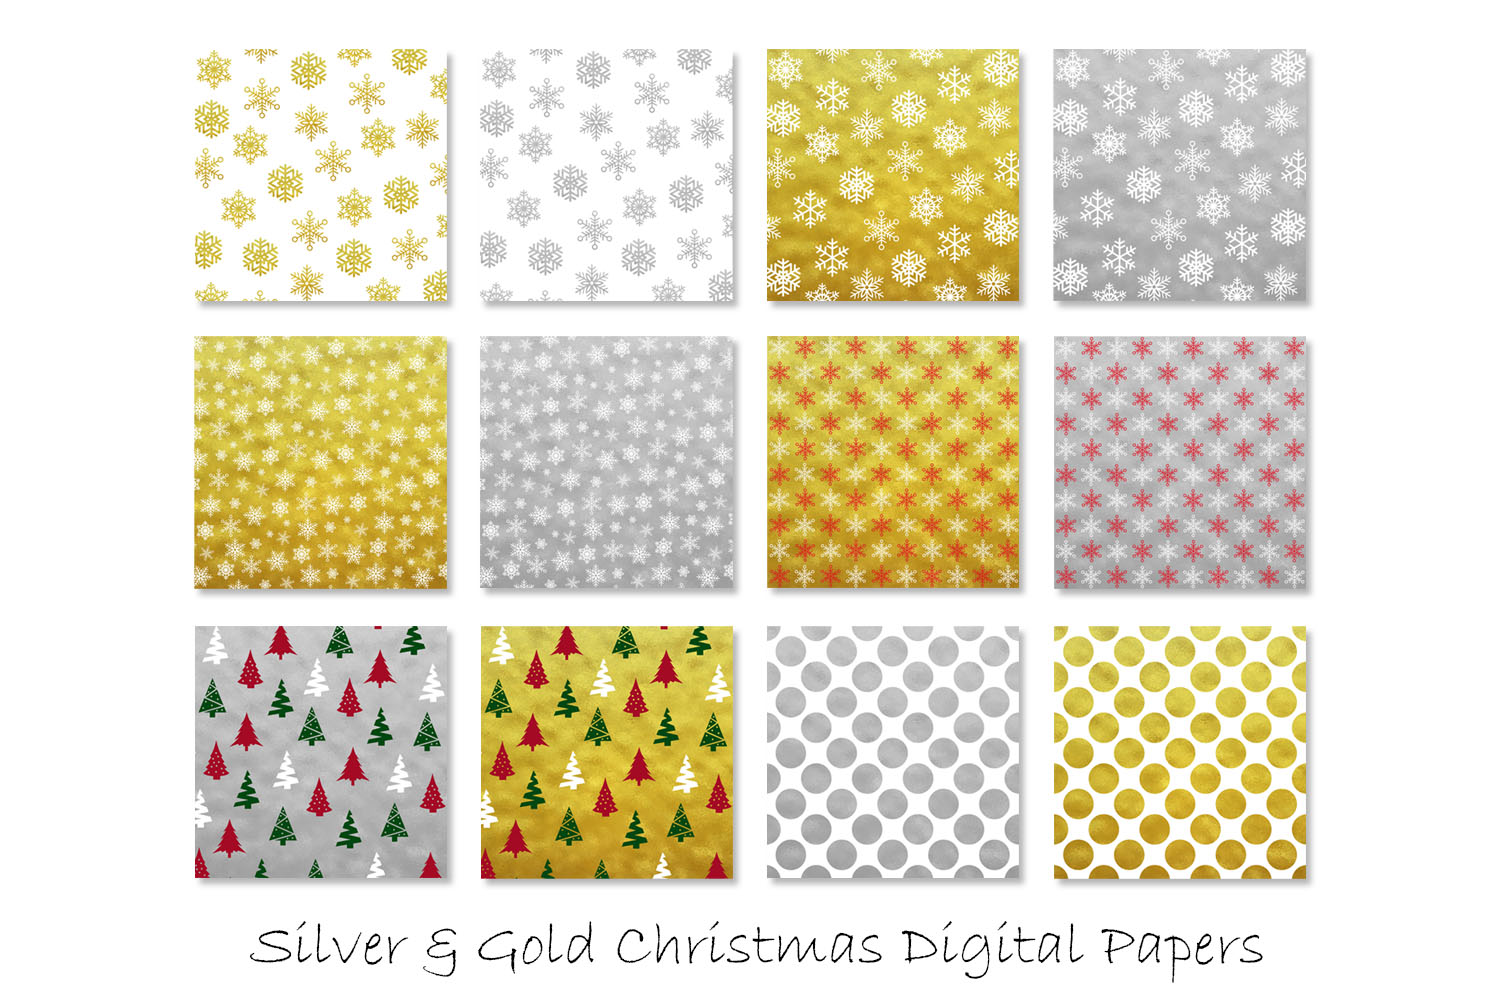 Gold & Silver Christmas Digital Paper - Snow Backgrounds example image 2